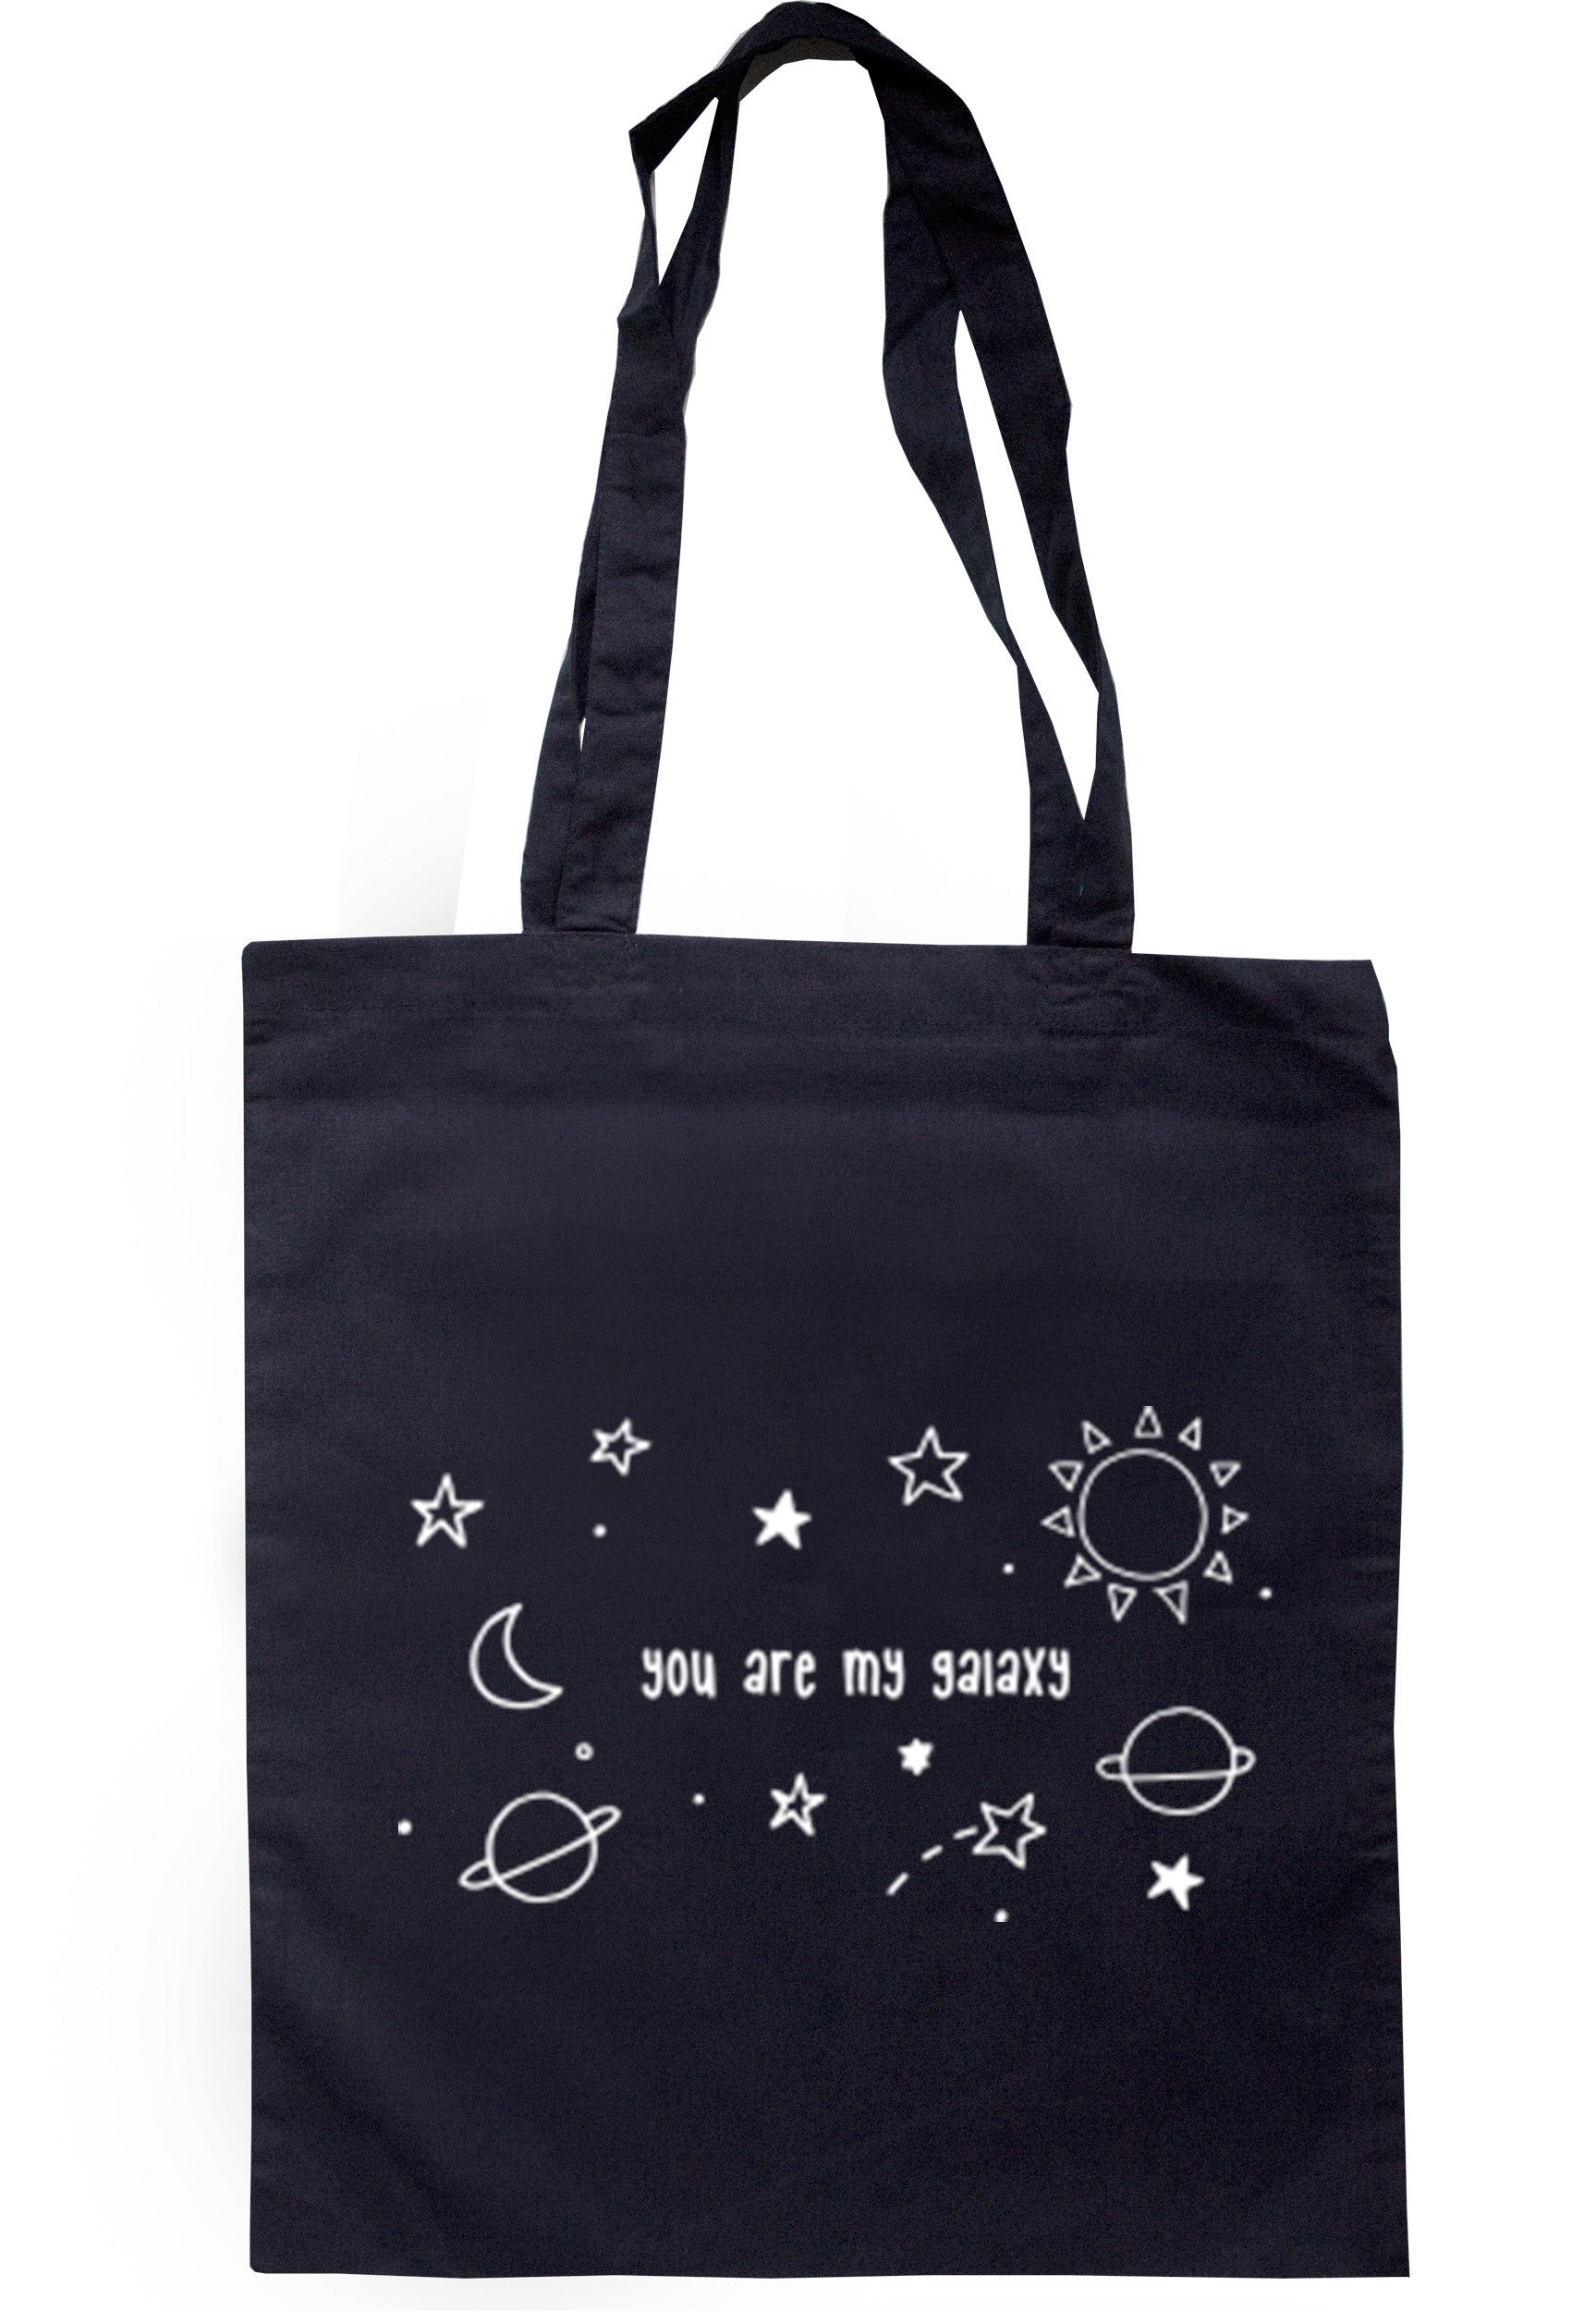 You Are My Galaxy Tote Bag TB0189 - Illustrated Identity Ltd.